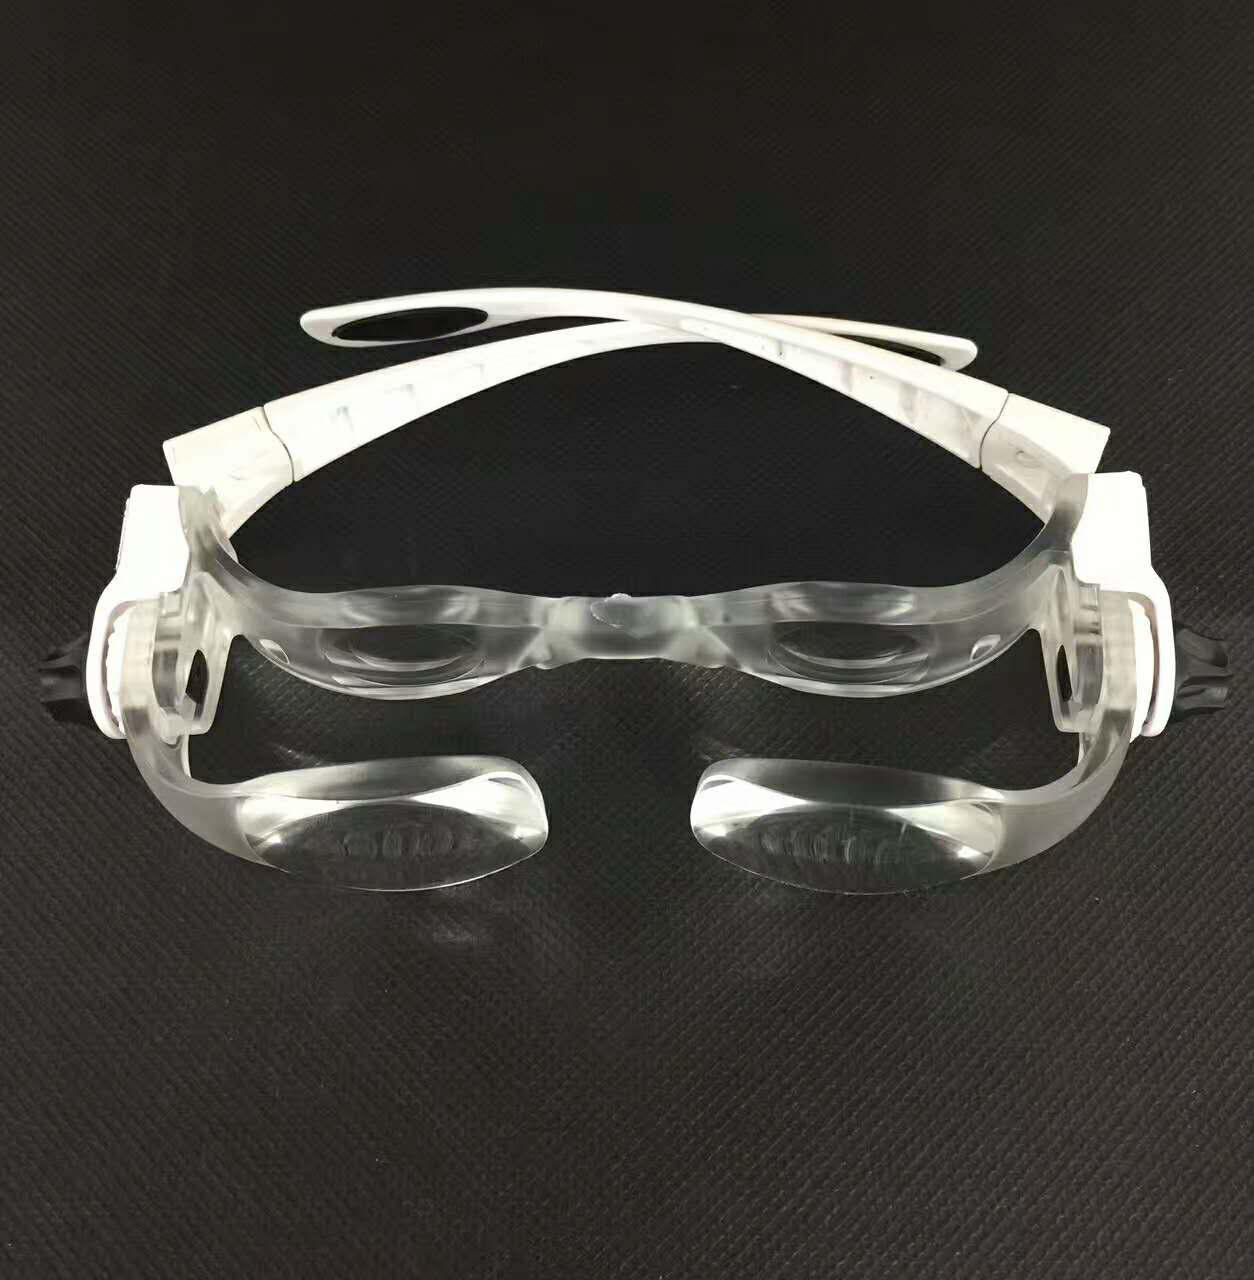 New glasses type headwear reading newspapers watching mobile video 3D theater 7102-360